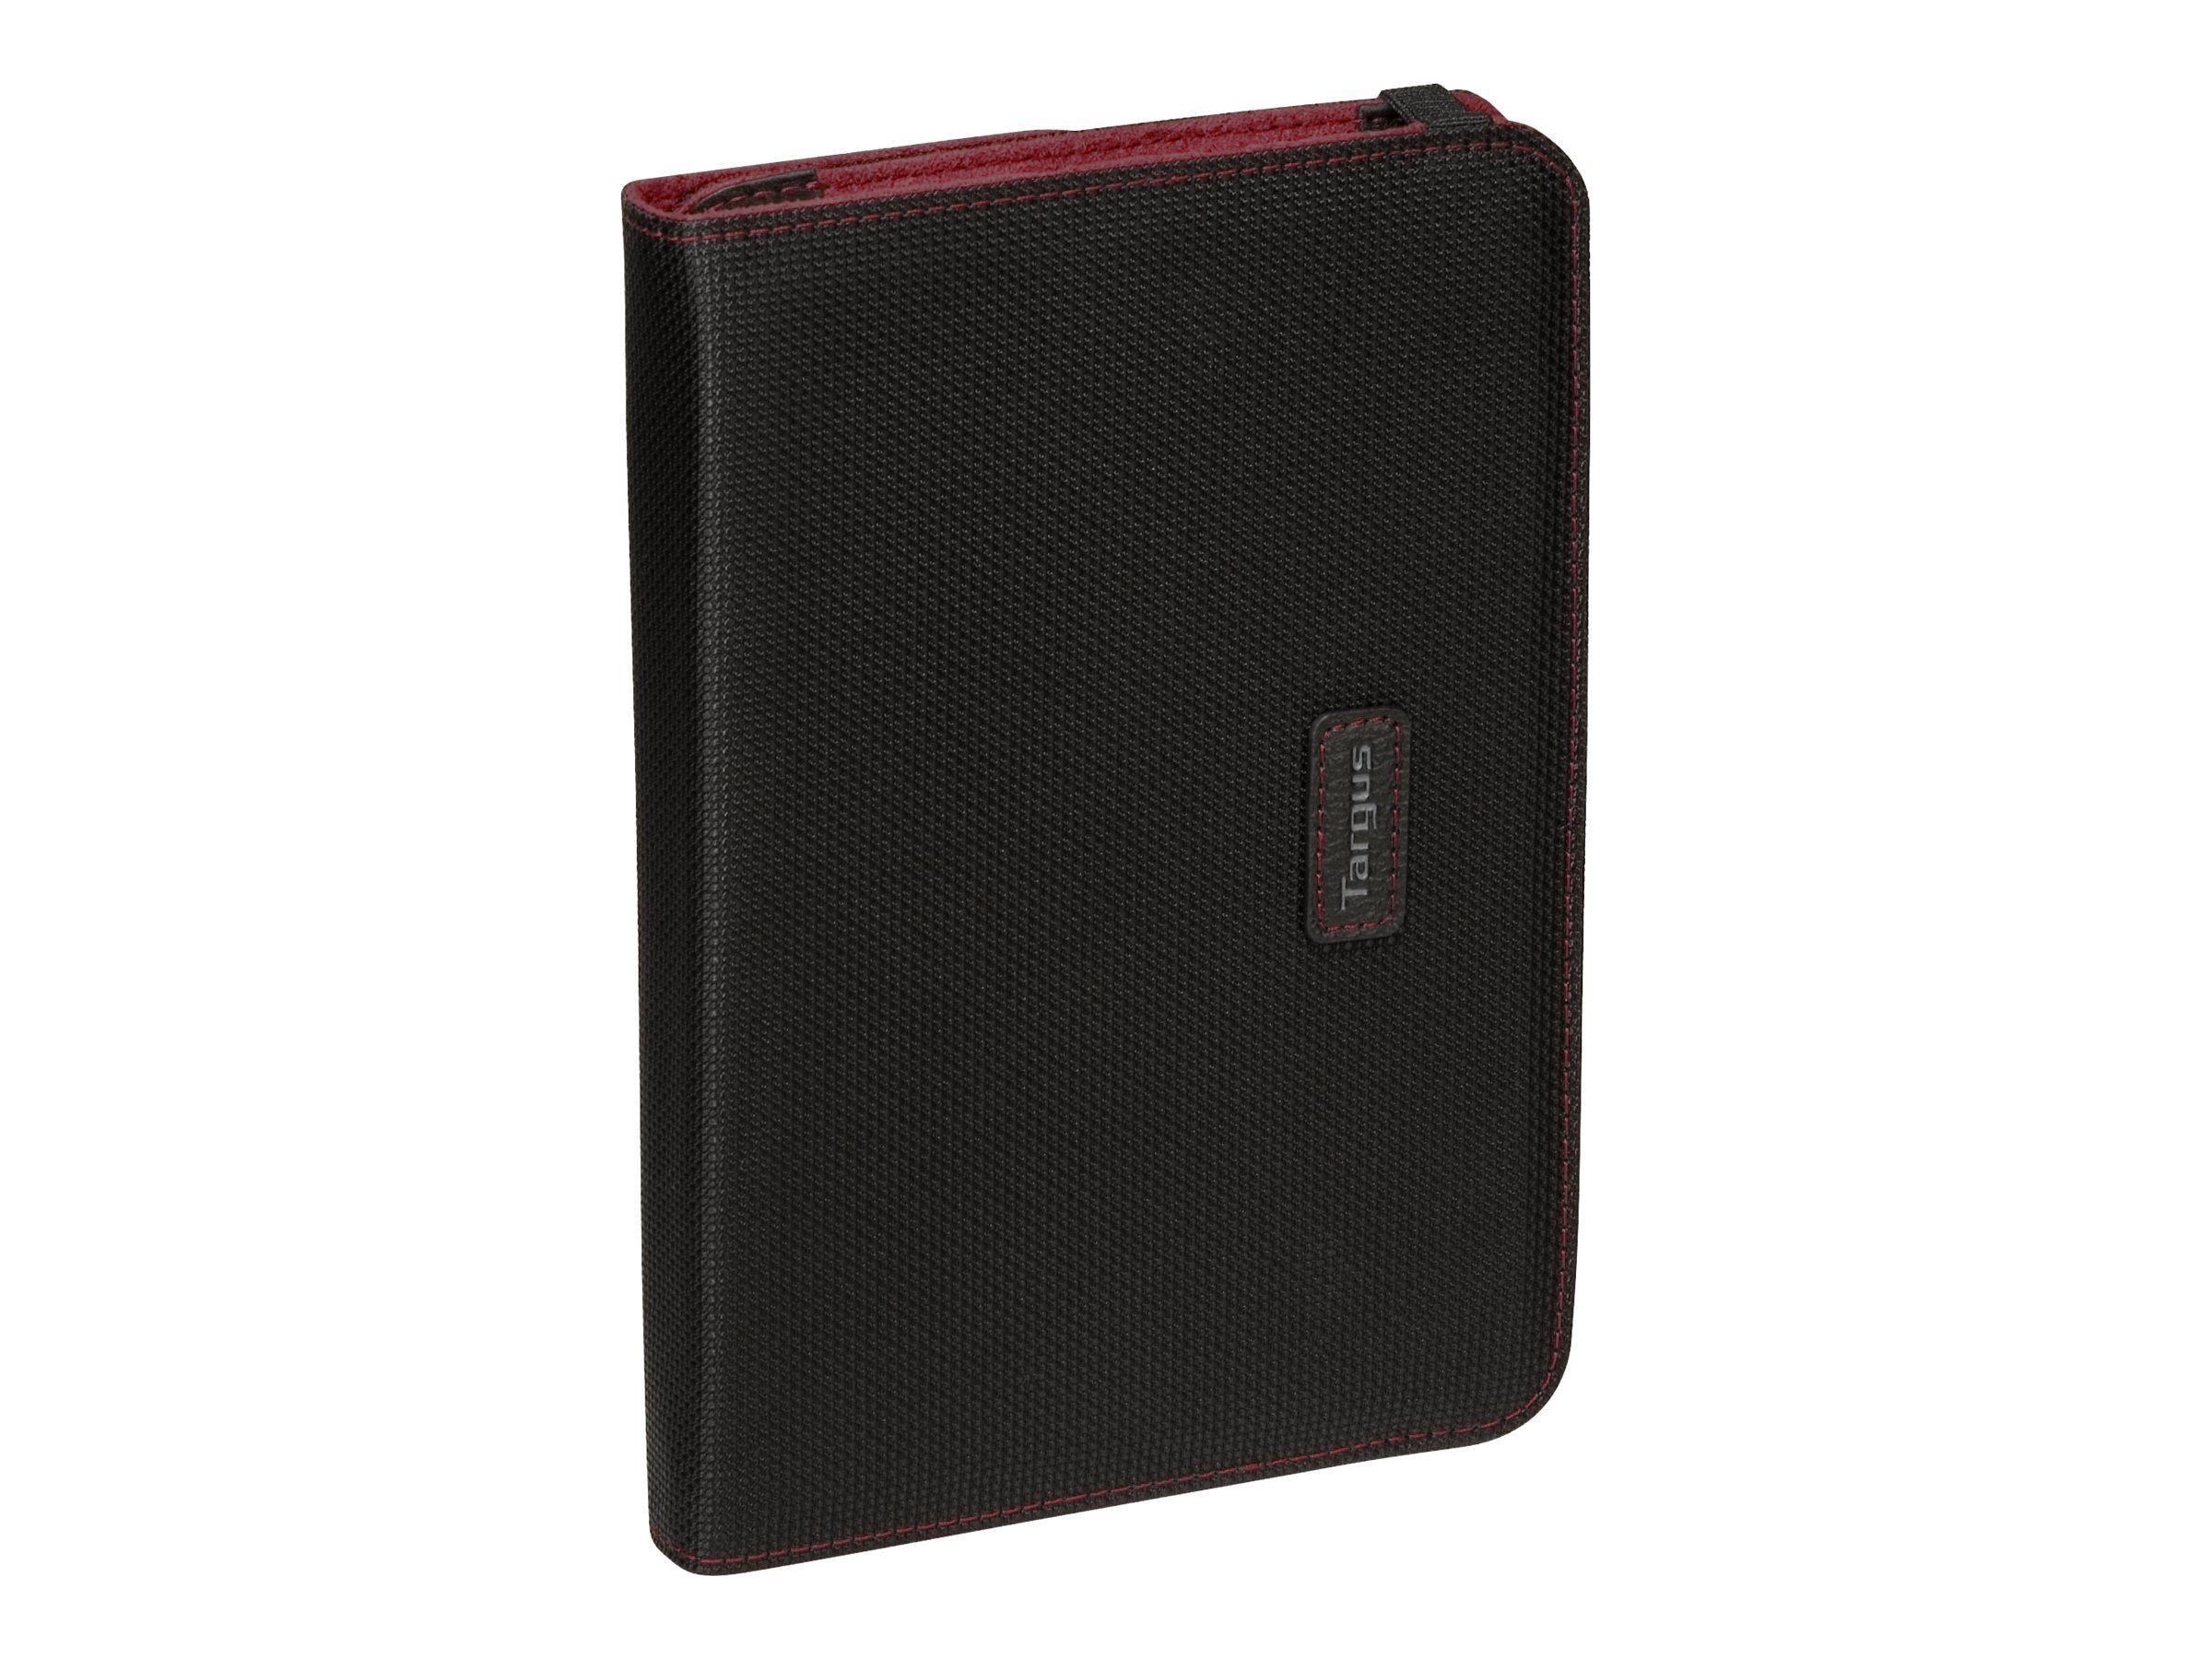 Targus Truss Nylon Case Stand for BlackBerry PlayBook, Black Red, THZ052US, 12920568, Carrying Cases - Phones/PDAs